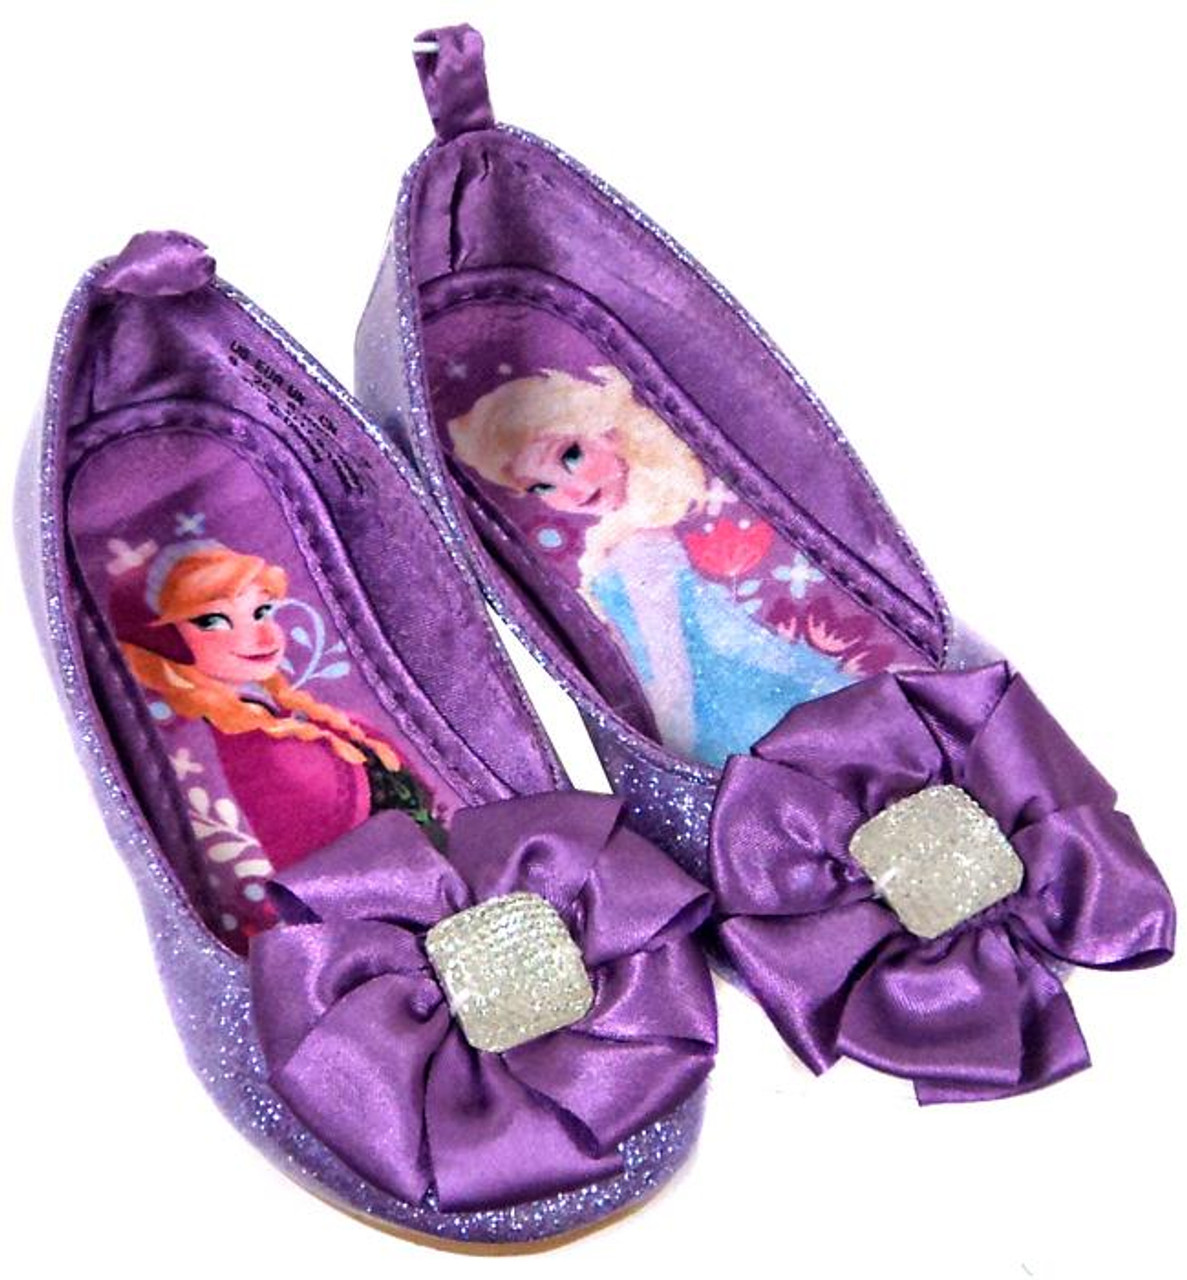 Disney Frozen Purple Anna & Elsa Exclusive Dress Up Toy [Size 9]